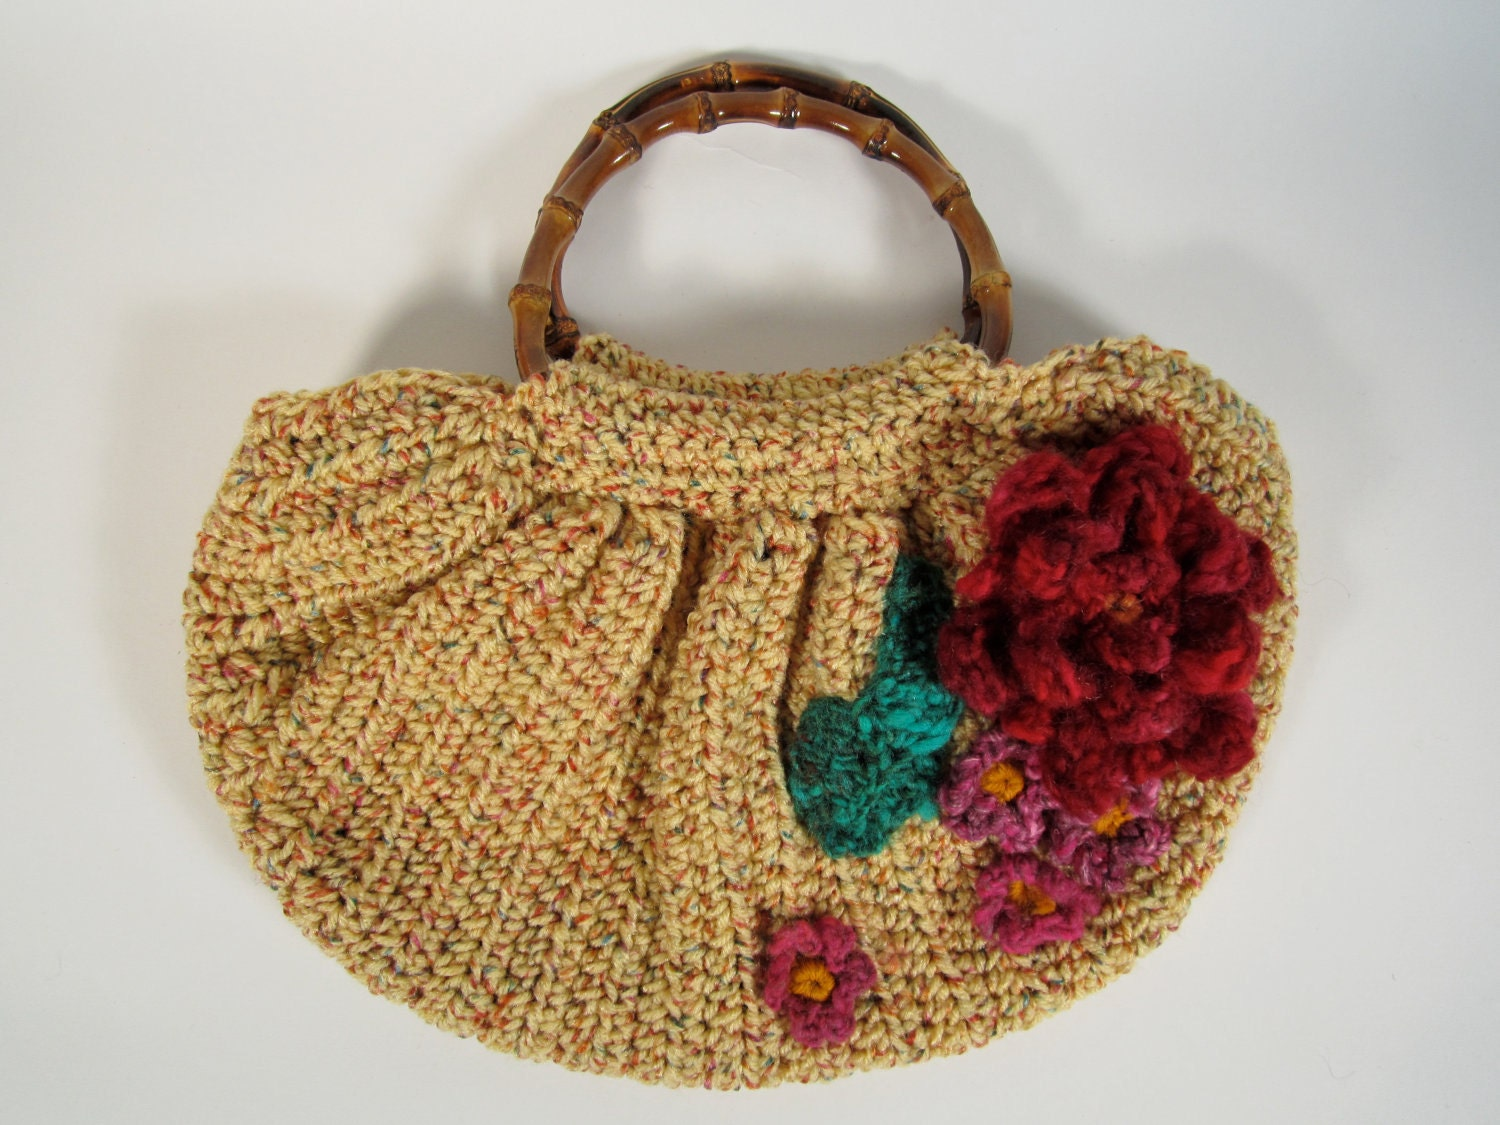 Crochet Hippie Bag : Crochet Boho Slouchy Slouch Bag Hippie Purse Womens Handmade Accessory ...